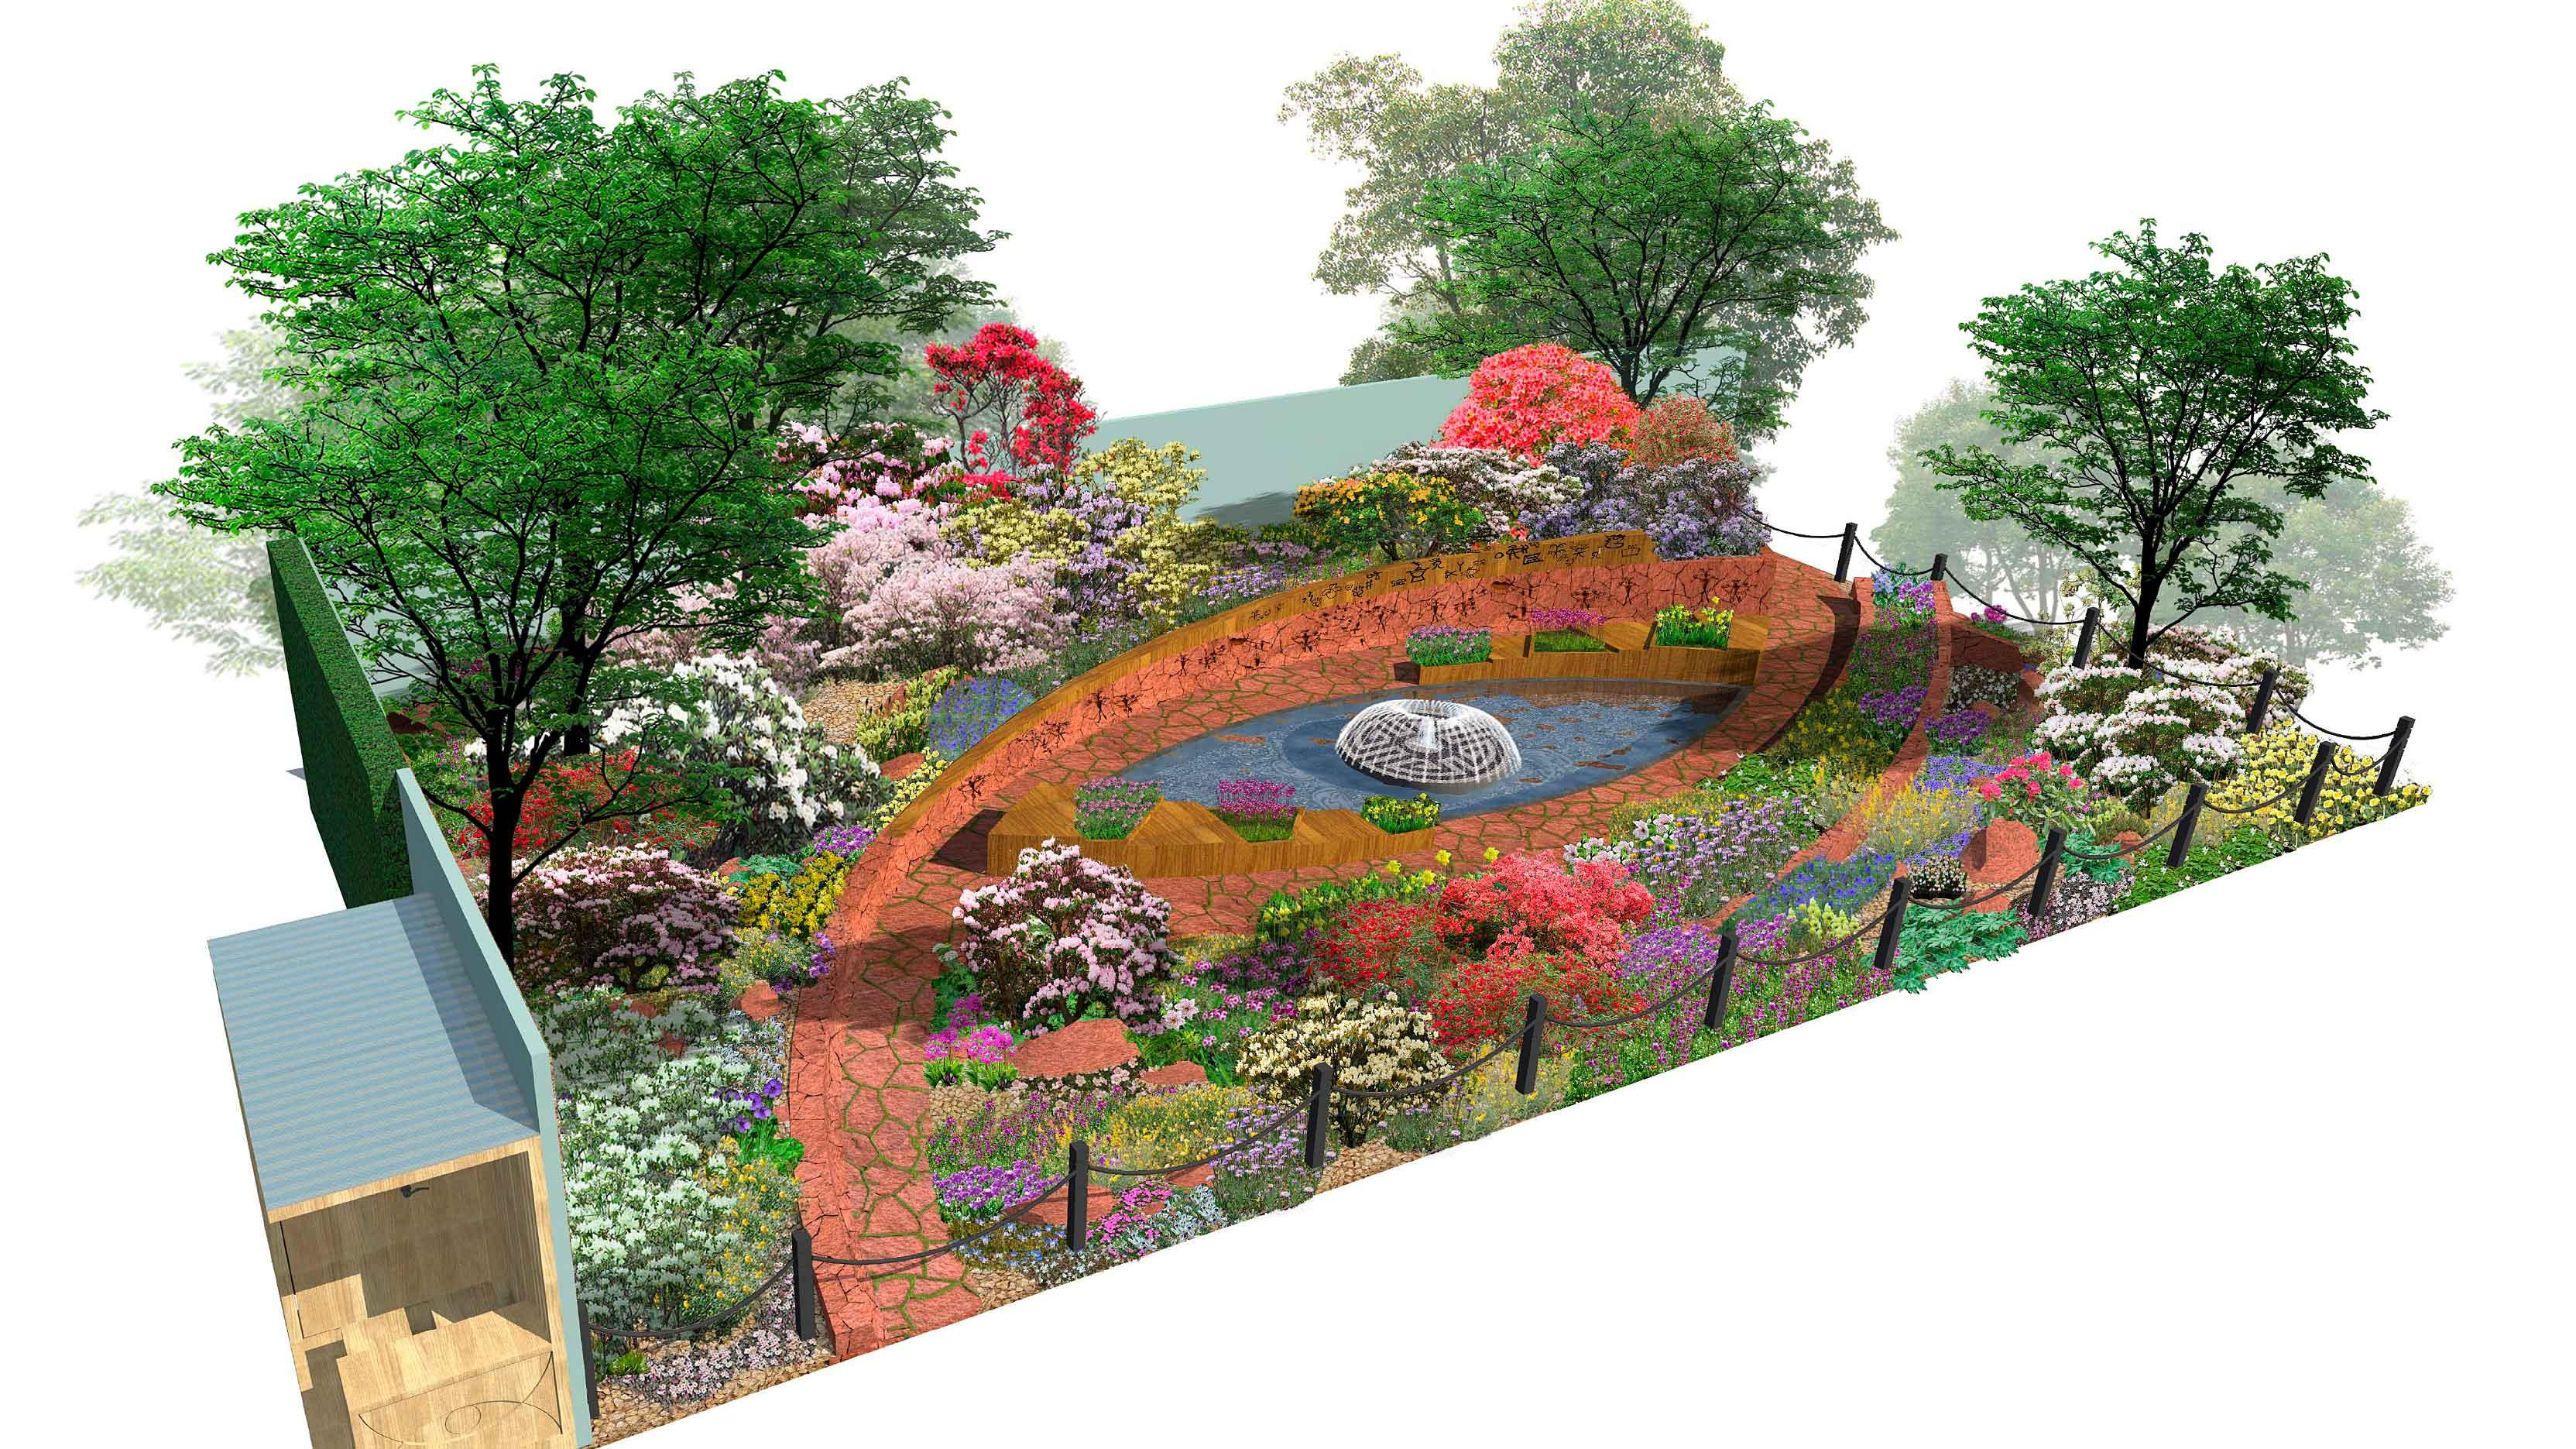 Chelsea flower show 2017 corporate entertainment packages - 1 1